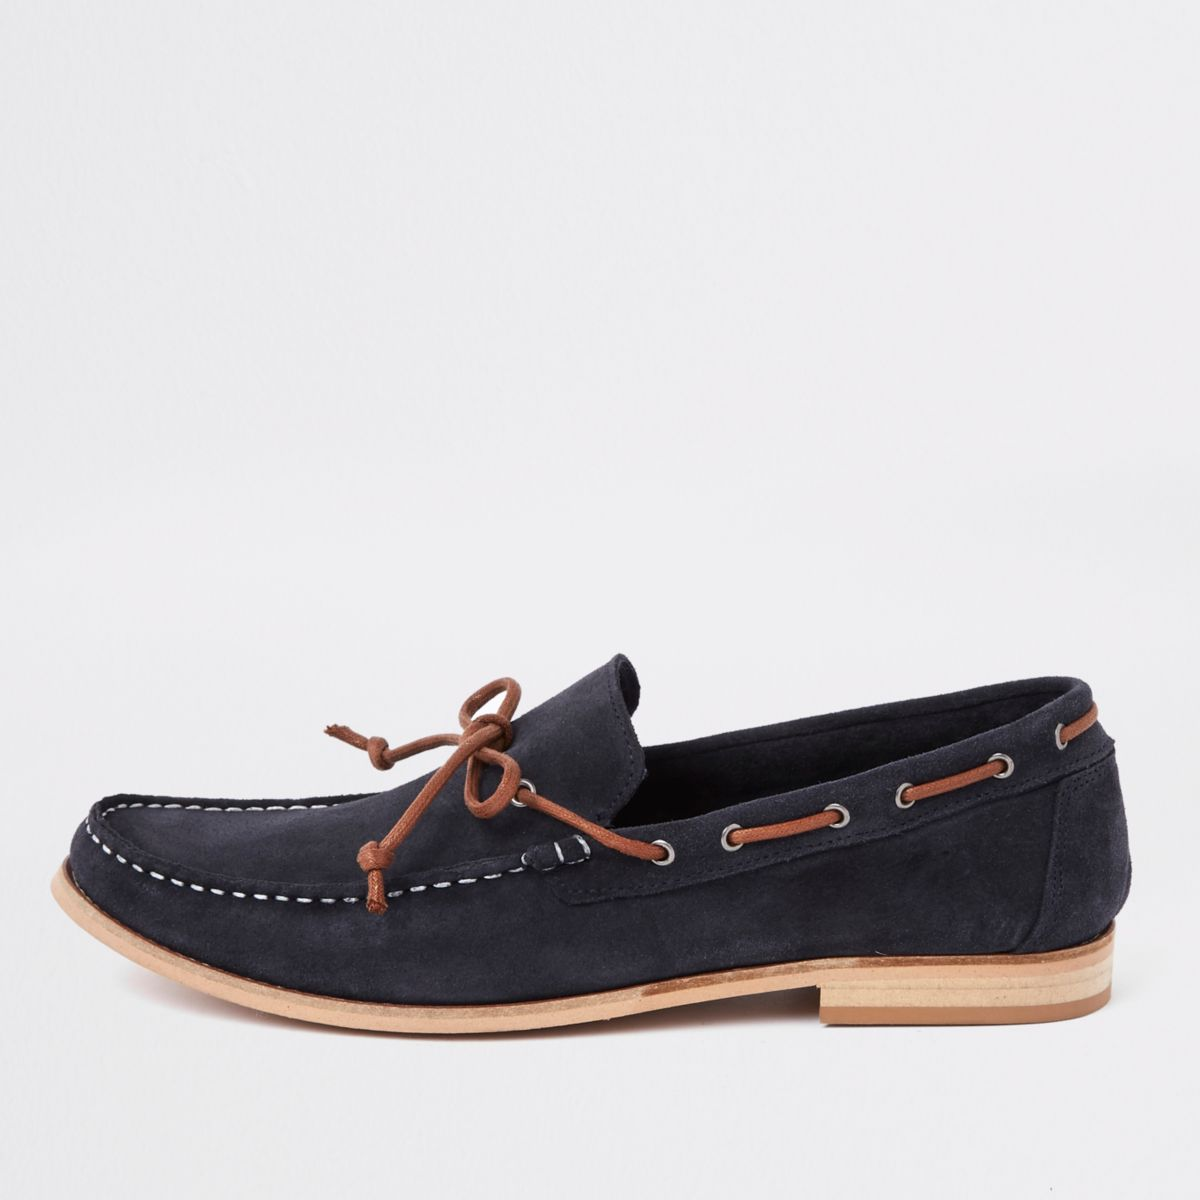 Navy suede tie front loafers